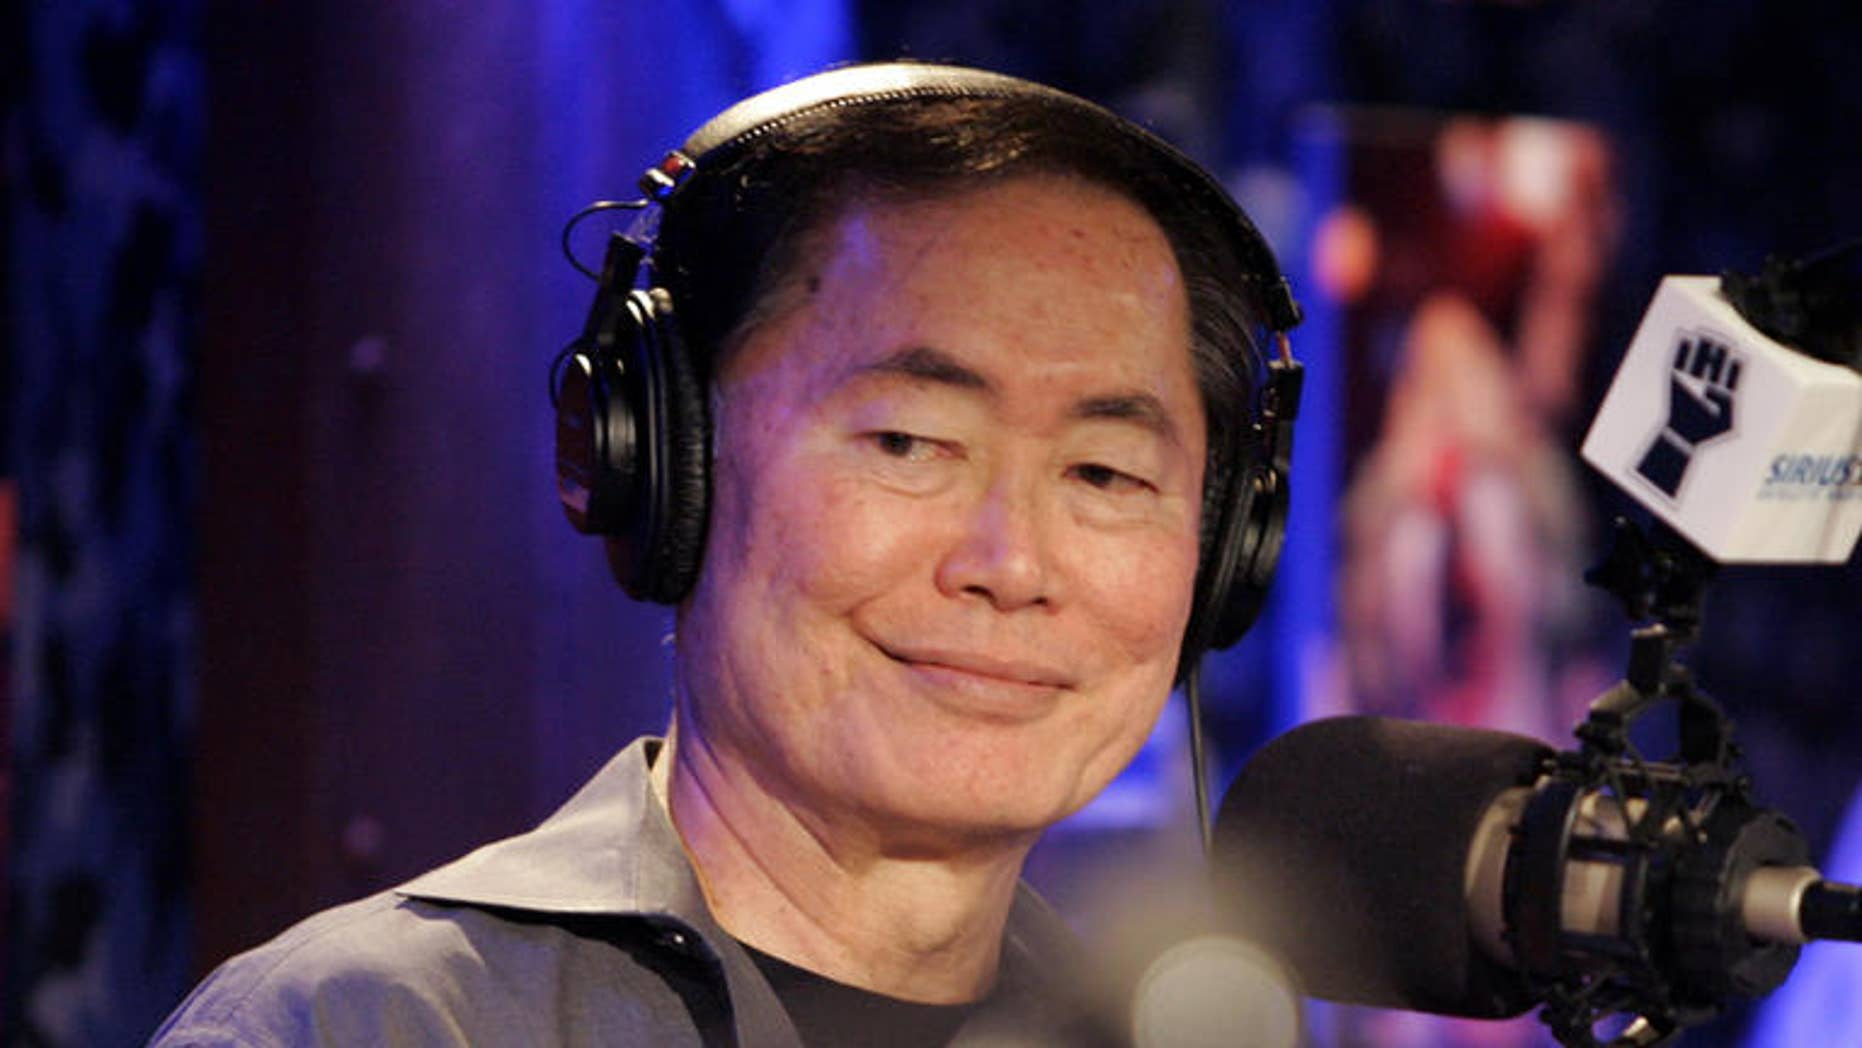 """George Takei, who played Captain Sulu on the popular television show and movie series """"Star Trek"""" and who last year publicly said he is gay, was introduced as Howard Stern's  announcer during his debut show on Sirius Satellite Radio, in New York, Monday Jan. 9, 2006. .Stern's deal could be worth up to $500 million over five years to headline two Sirius channels. (AP Photo/Richard Drew)"""